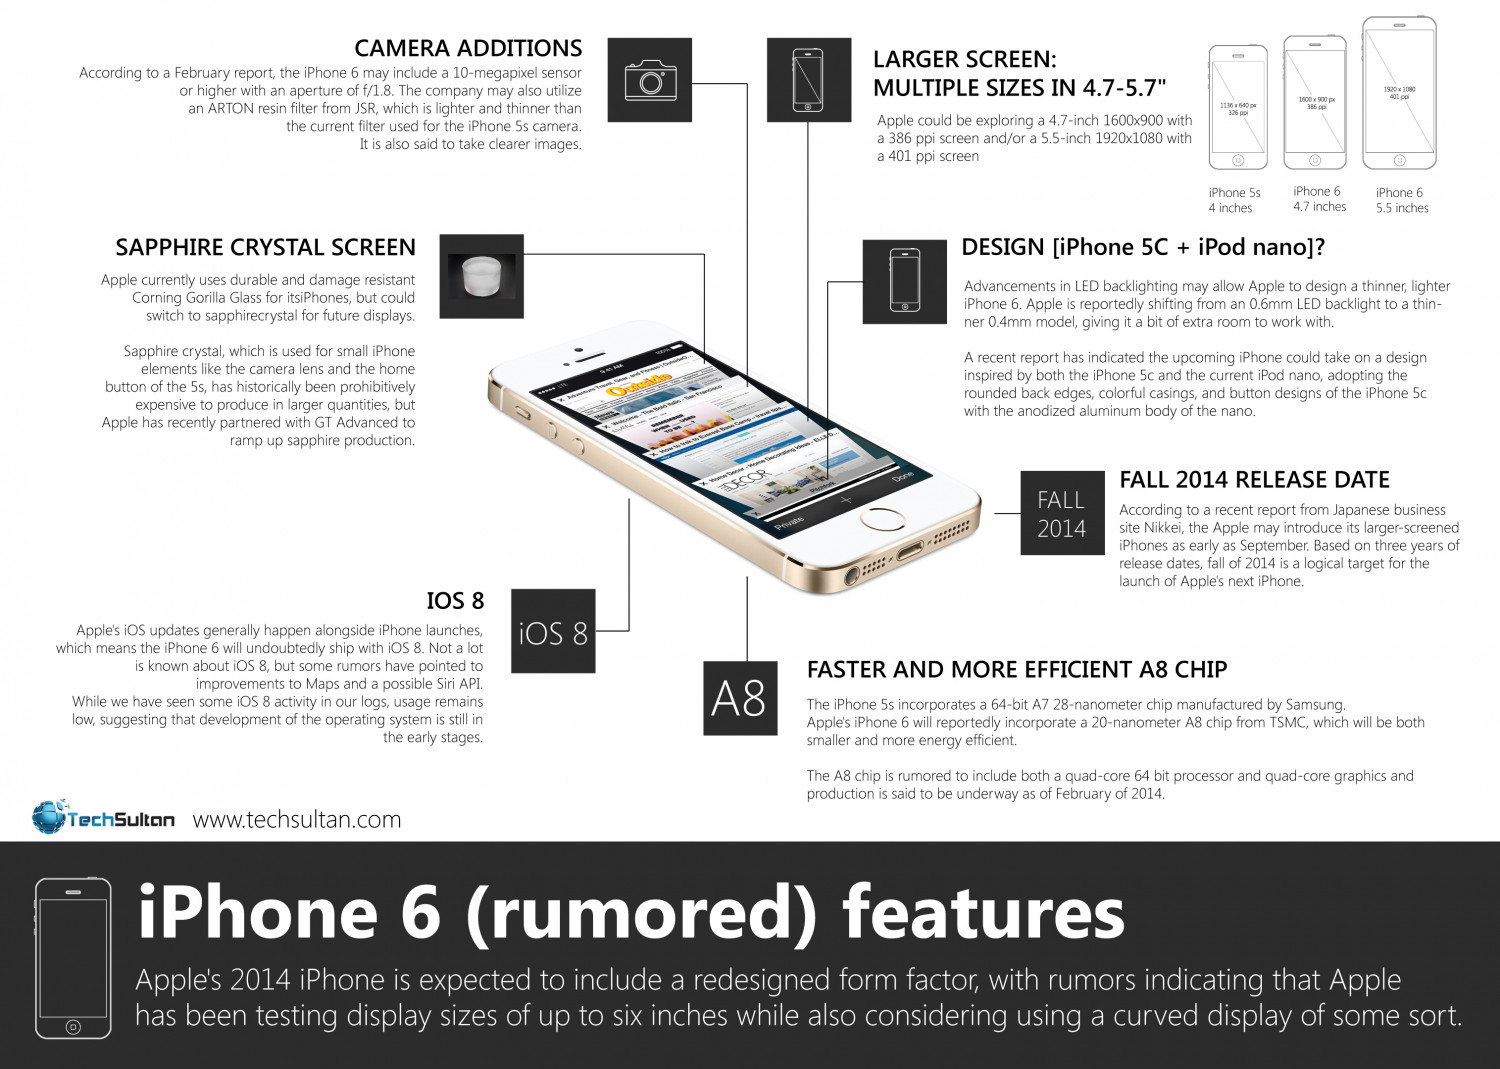 iPhone 6 Rumored Features | Visual.ly